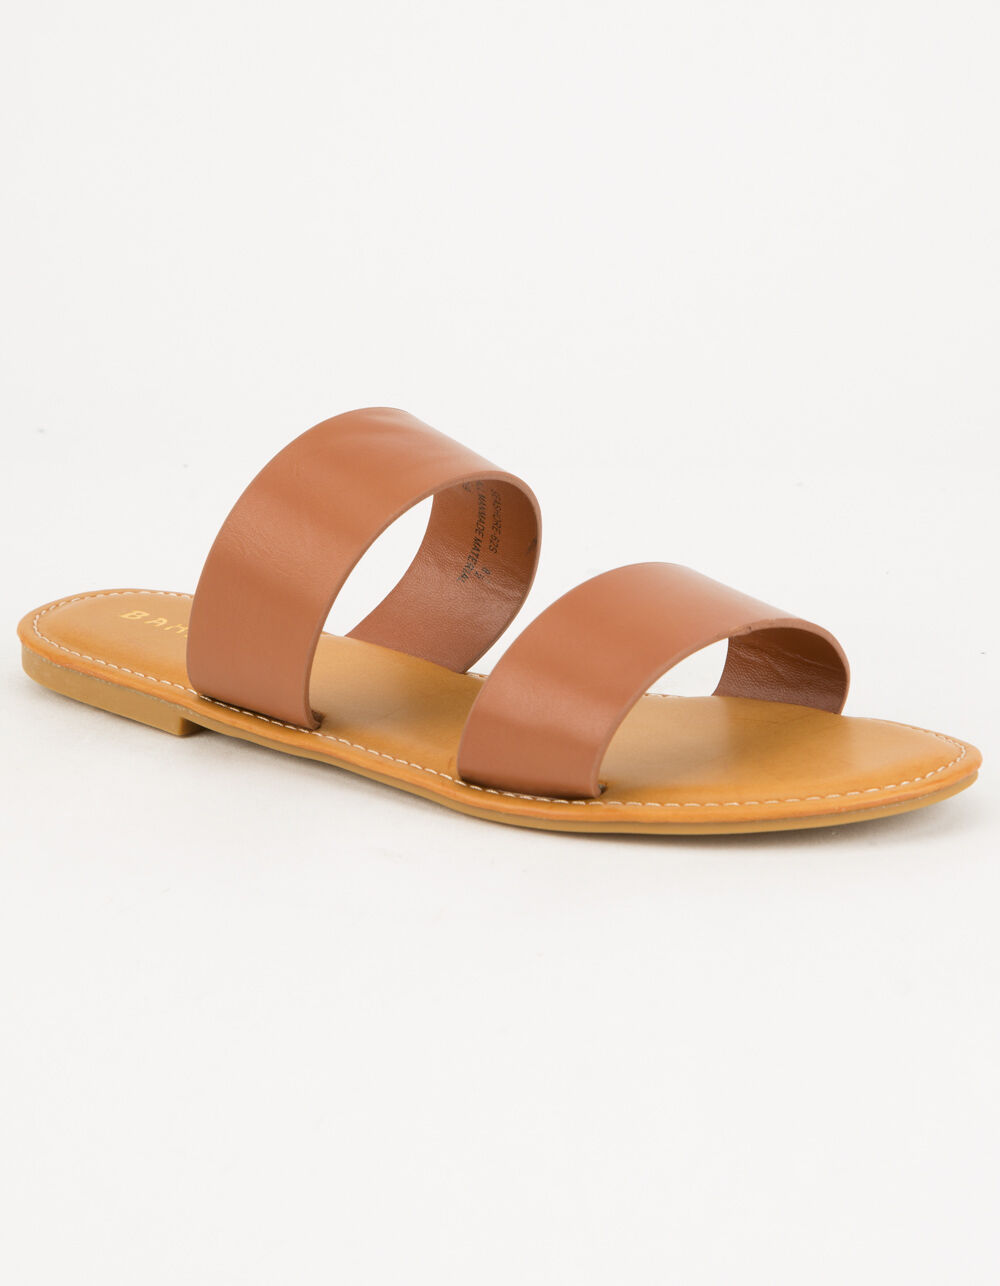 BAMBOO Double Strap Tan Sandals